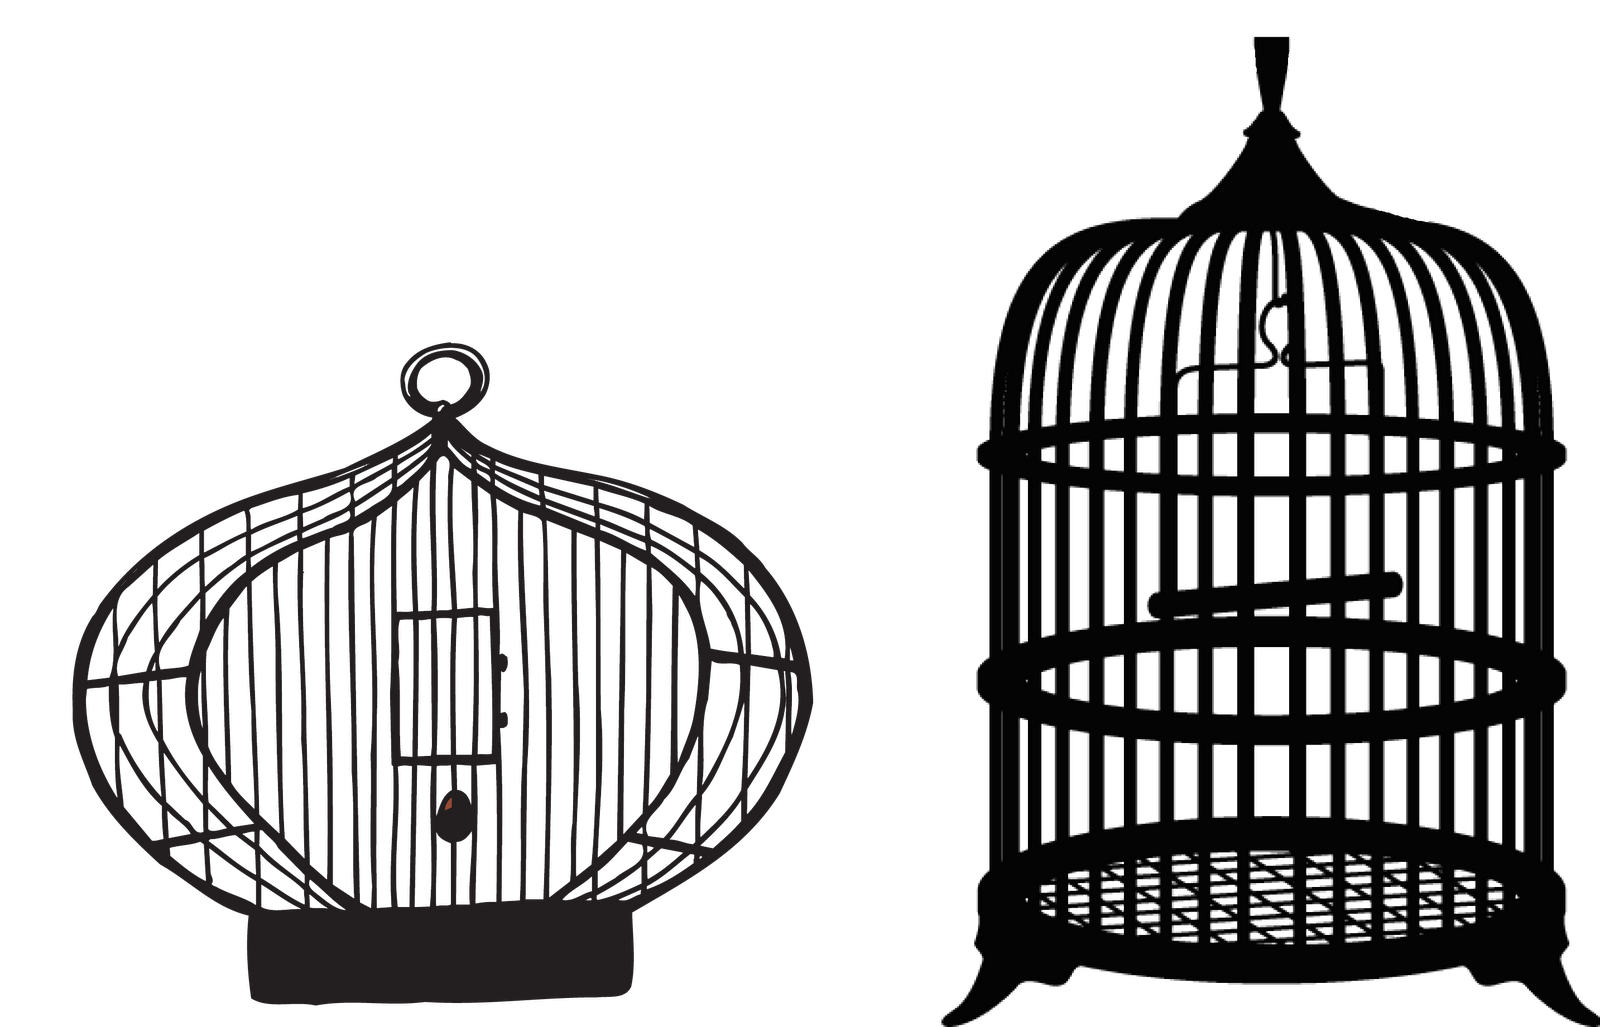 free bird cage cages download transparent background png: eridoodle.blogspot.com/2012/01/bird-cages.html